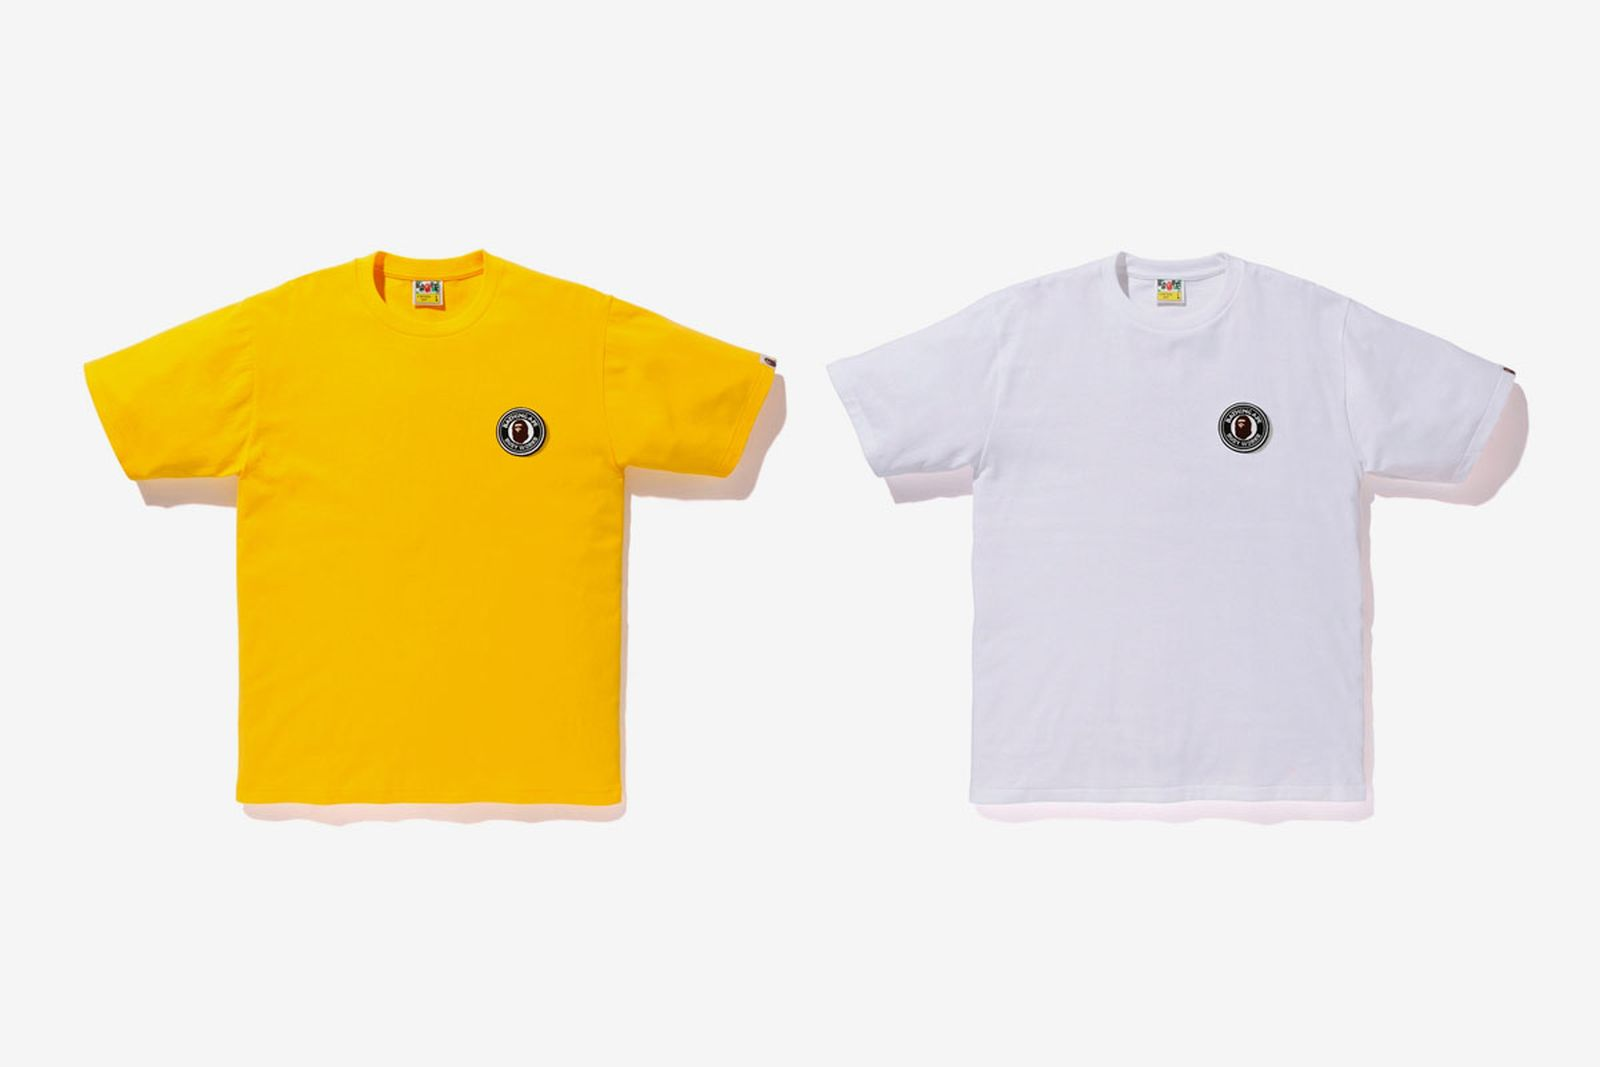 bape busy works store collection A Bathing Ape